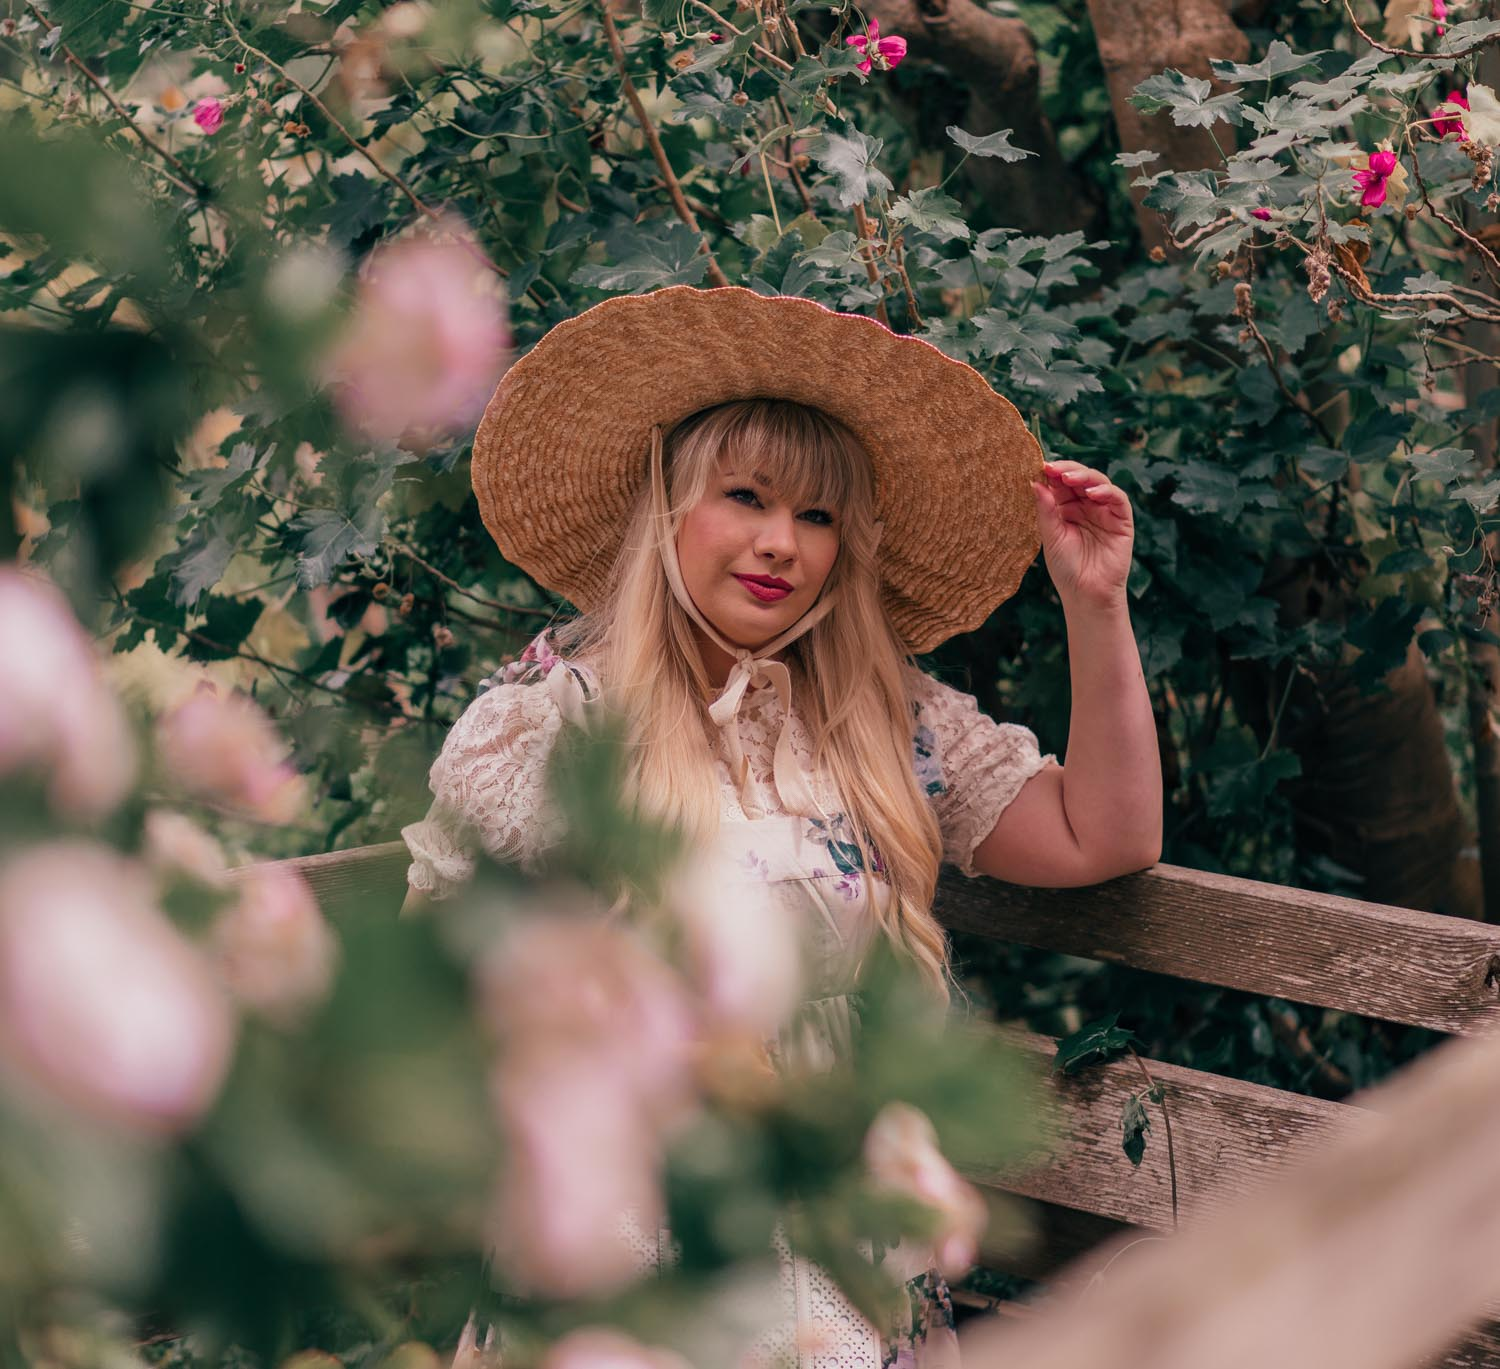 Feminine Fashion Blogger Elizabeth Hugen of Lizzie in Lace shares How to Create a Cottagecore Aesthetic Outfit featuring a floral chicwish dress and lack of color hat